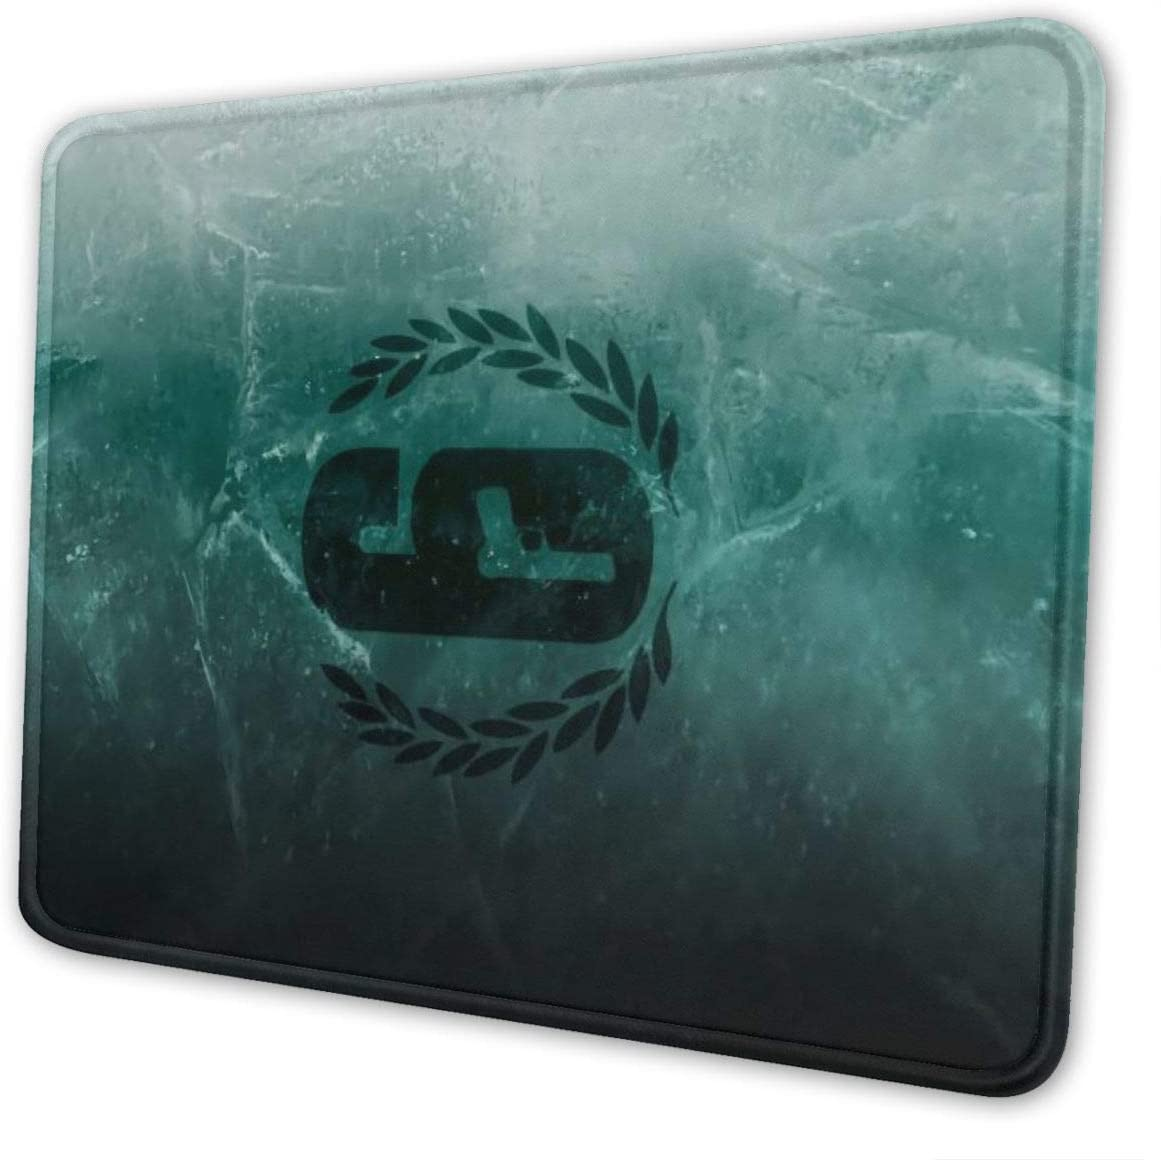 Rainbow Six Siege Gaming Mouse Pad Keyboards Mouse Mat Non-Slip Rubber Game Mousepad with Stitched Edge Wrist Rests Multifunctional Big Office Desk Pad for Pc Computer Laptop 7 X 8.6 in